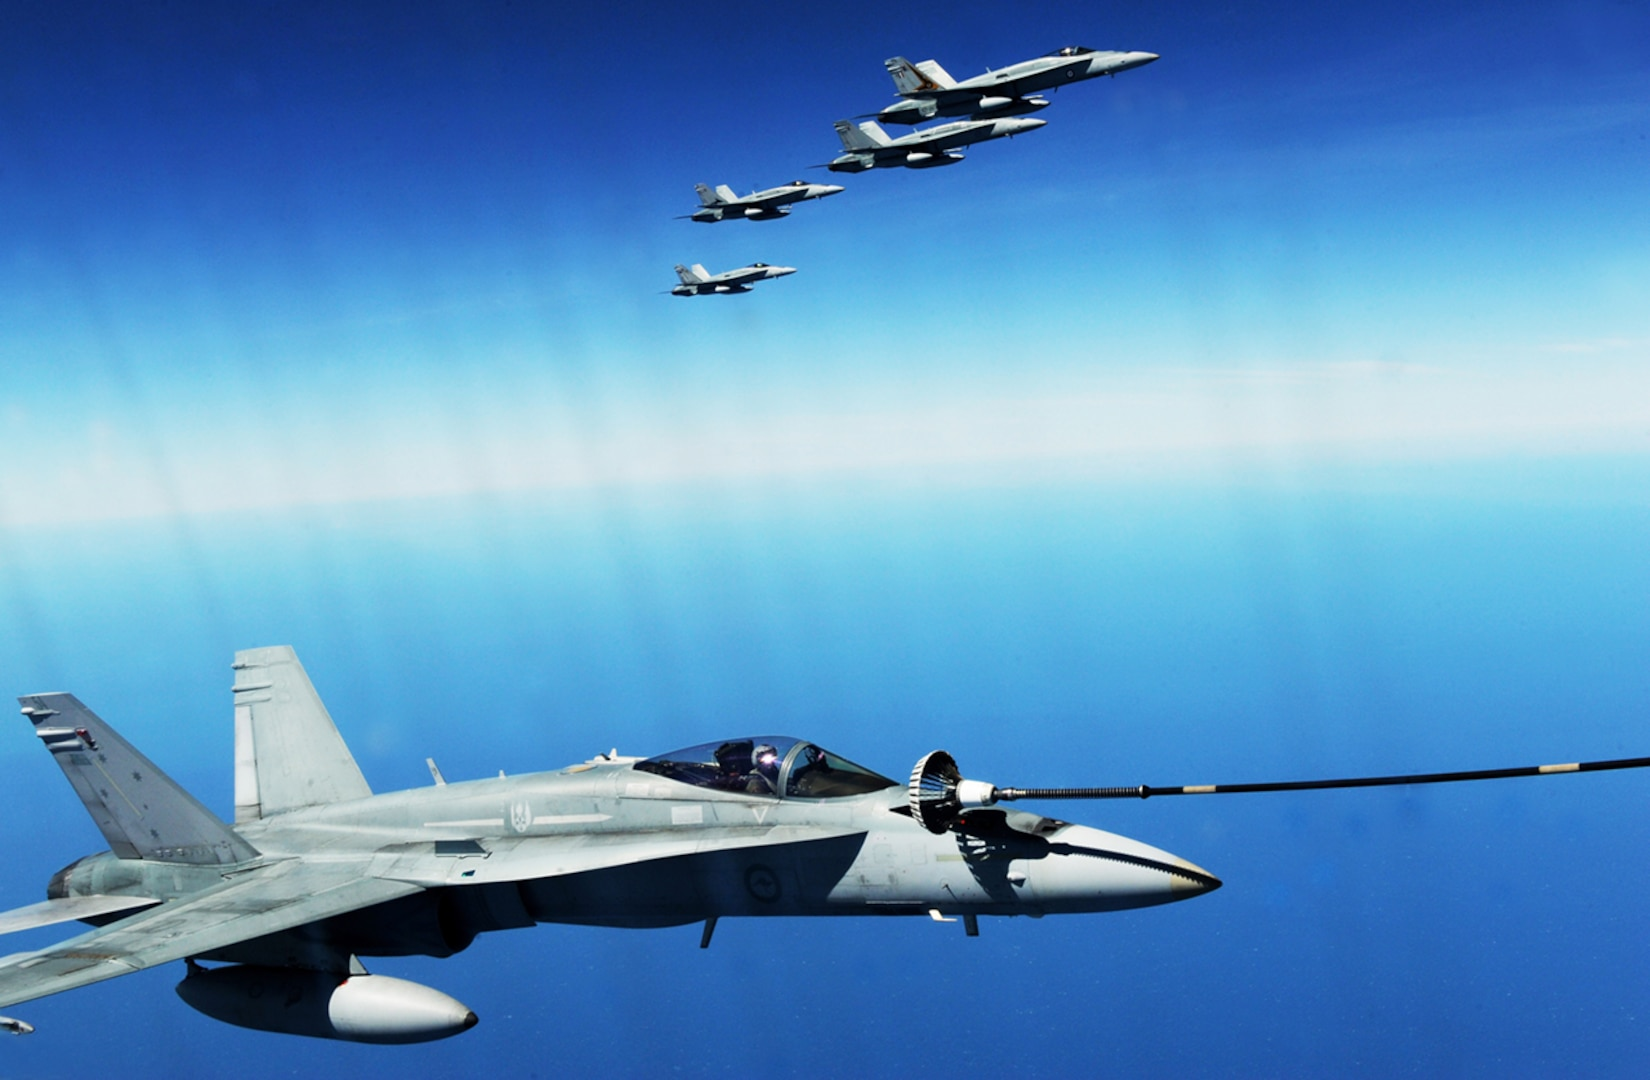 A Royal Australian air force F/A-18 Hornet refuels during a training exercise near Darwin, Australia. U.S. and Australian forces conduct air refueling missions throughout the exercise to improve interoperability and familiarization with each other's procedures.